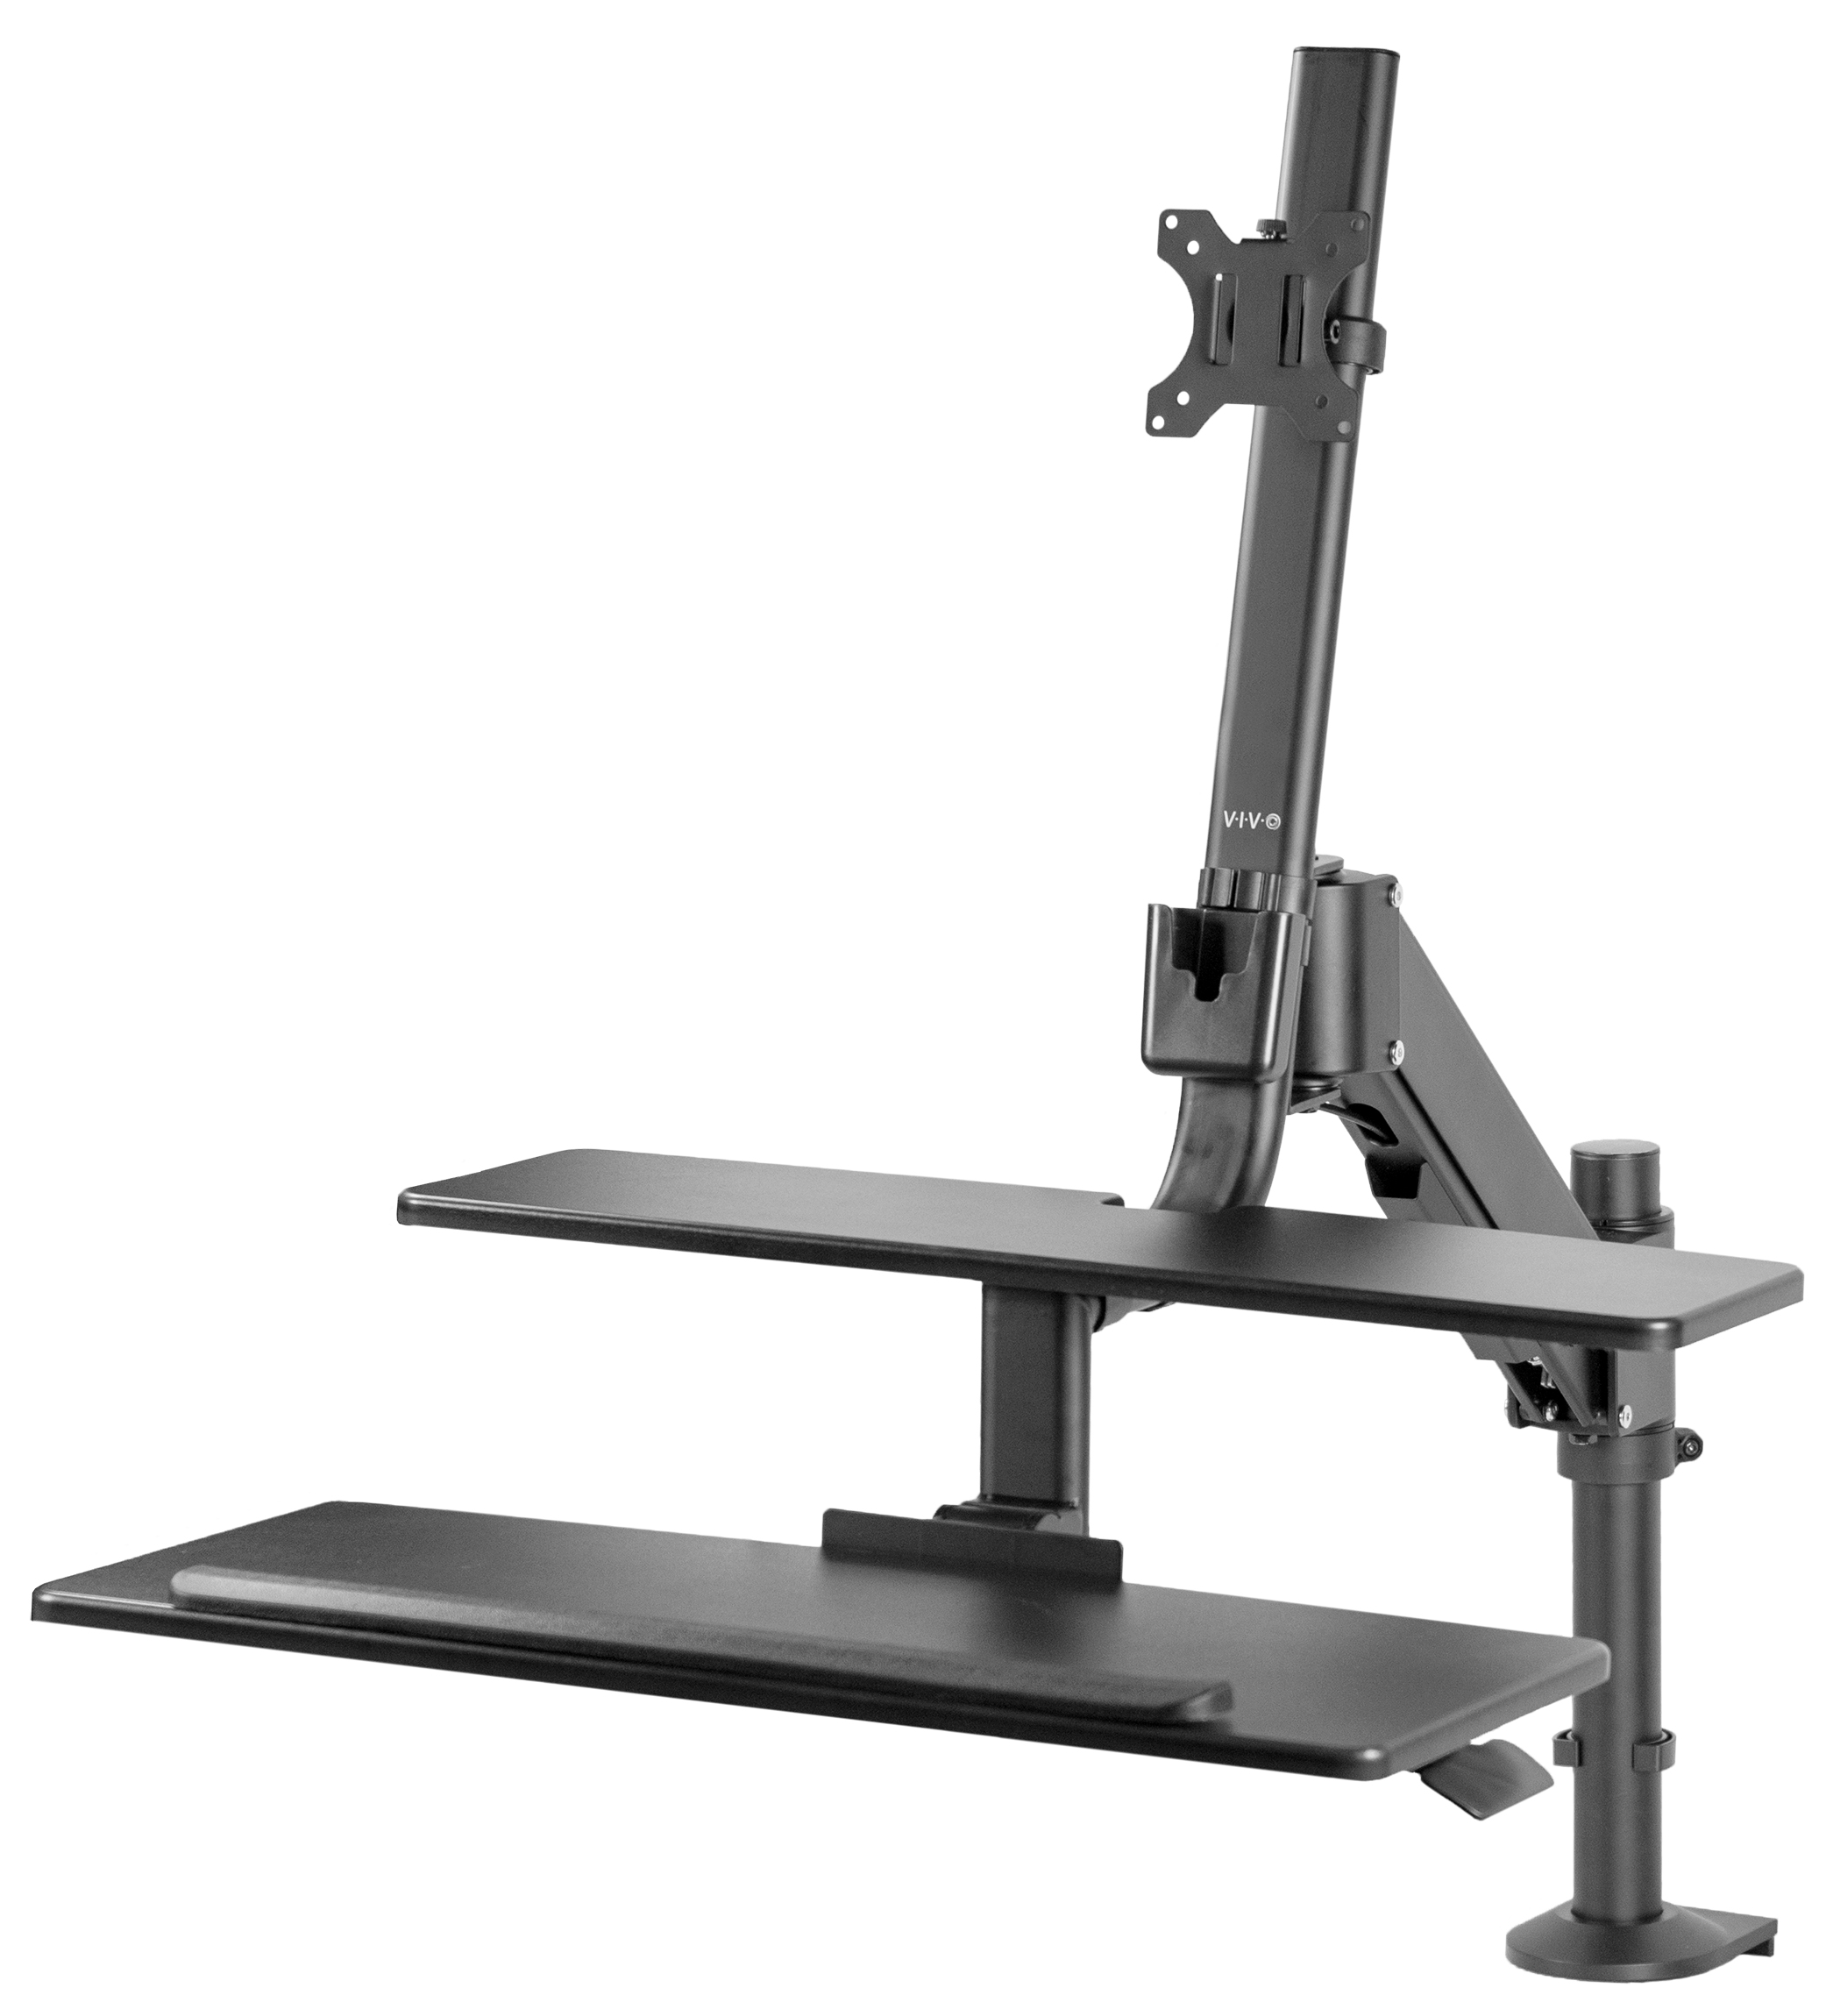 "VIVO Black Single Monitor Sit-Stand Adjustable Standing Desk Mount with Keyboard Tray | Screens 17"" to 32"" (STAND-SIT1D)"